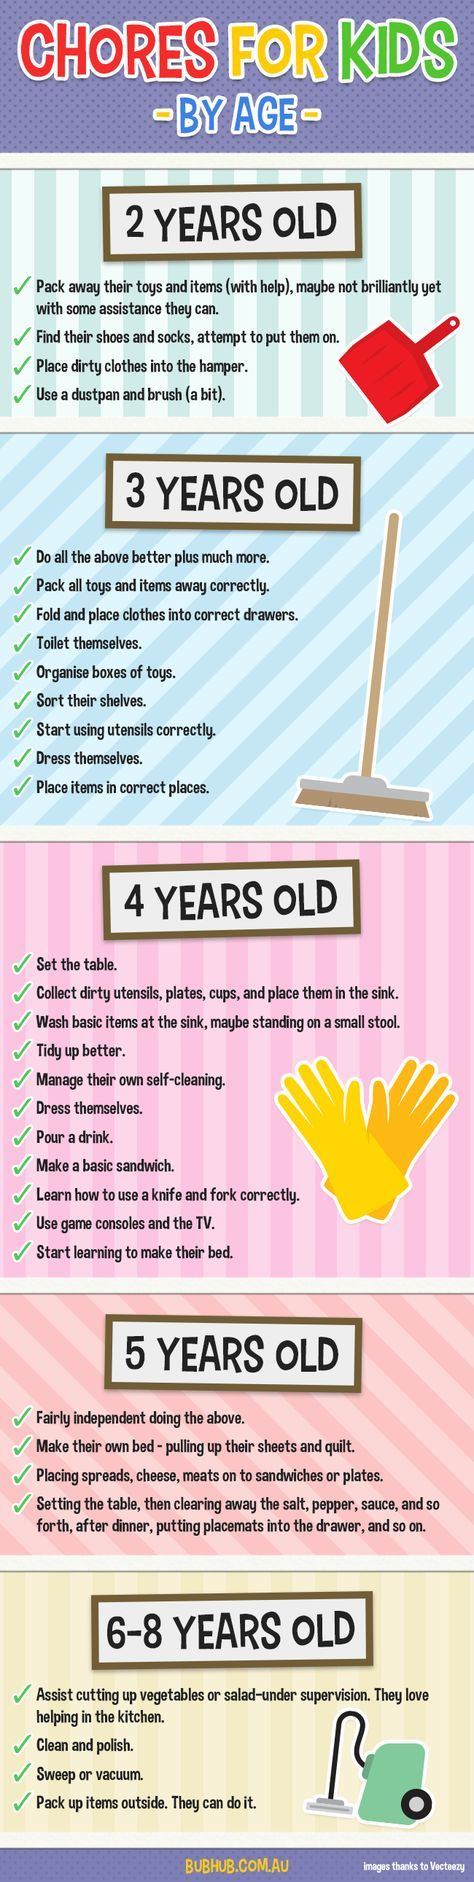 best images about parenting tips on pinterest how to work